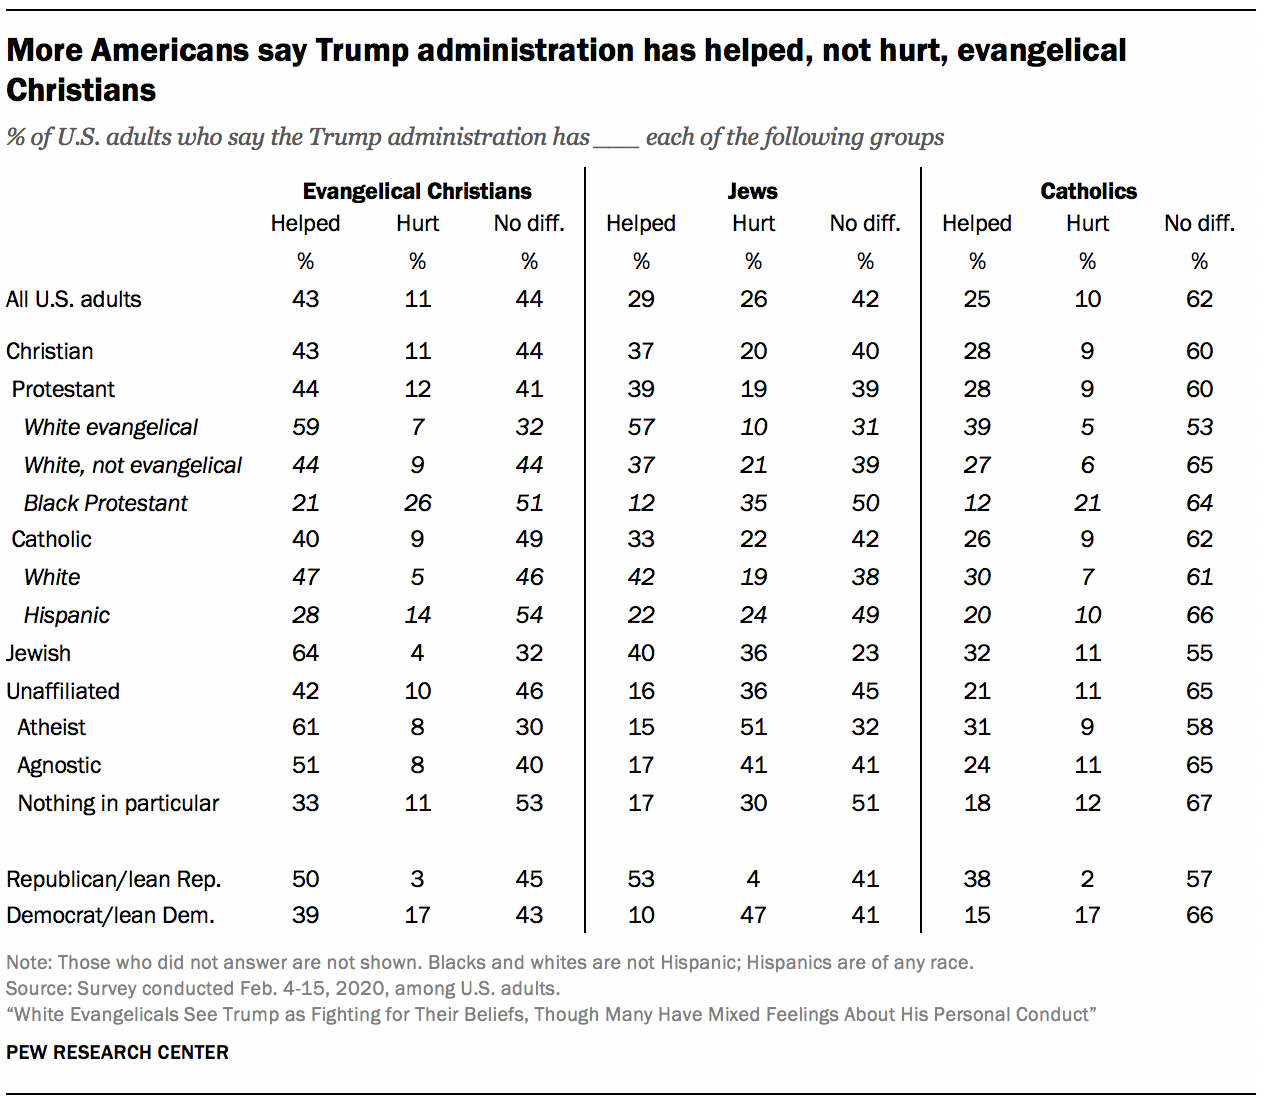 More Americans say Trump administration has helped, not hurt, evangelical Christians